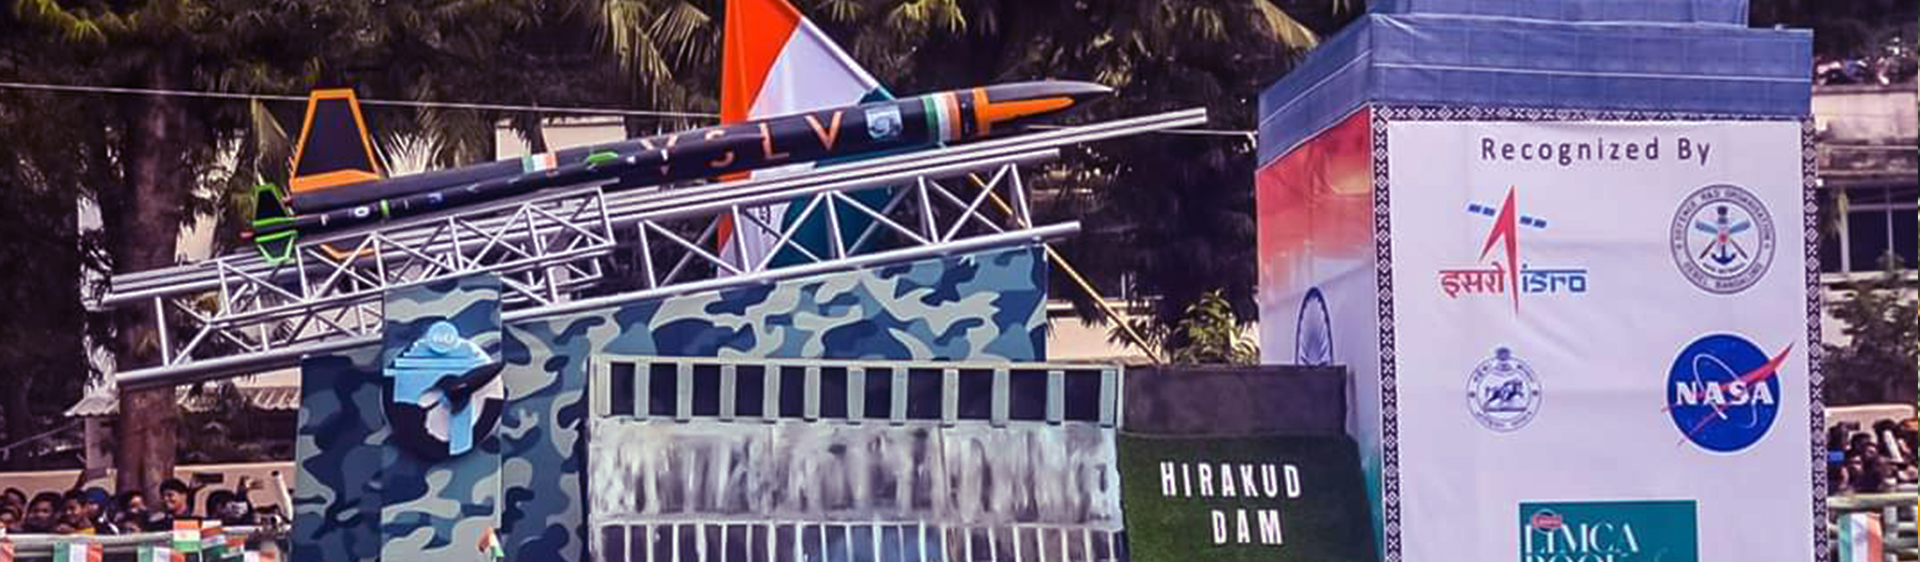 A Tableau  with a Rocket on display at the Republic Day Parade in Bhubaneswar on Saturday